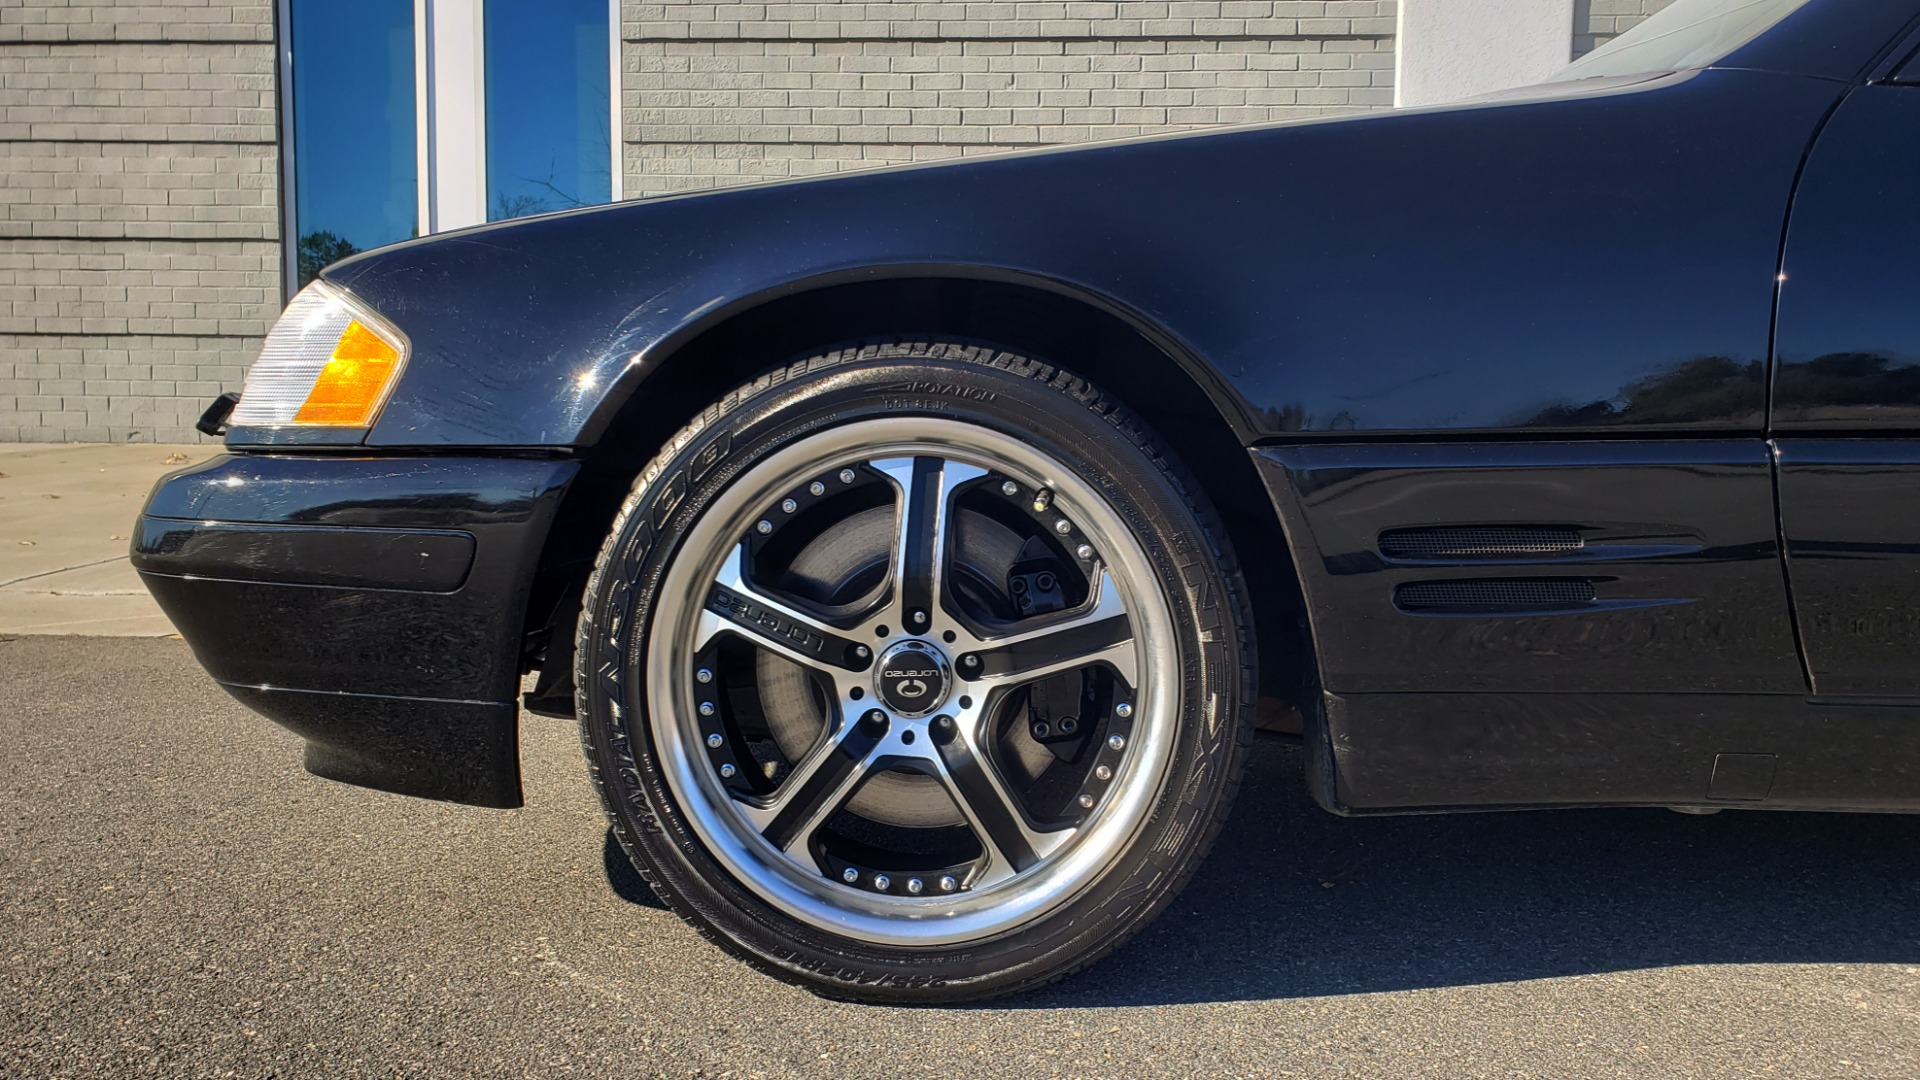 Used 1999 Mercedes-Benz SL-CLASS ROADSTER / 5.0L V8 (302HP) / 5-SPD AUTO / 18IN WHEELS for sale Sold at Formula Imports in Charlotte NC 28227 71